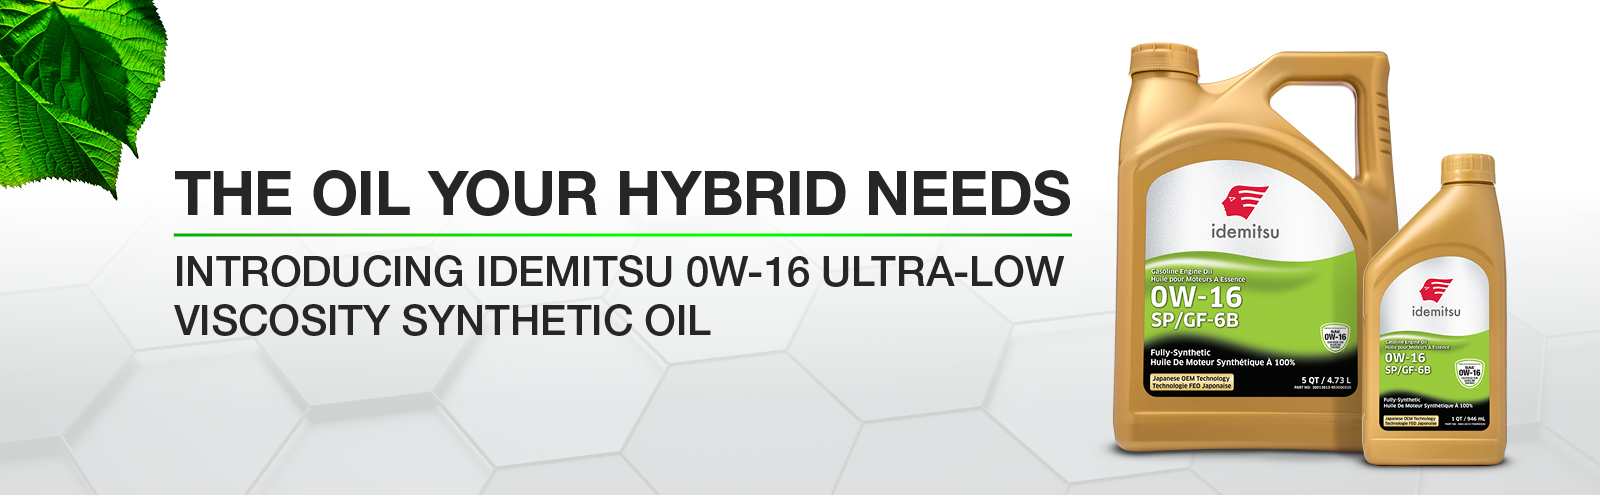 The oil your hybrid needs